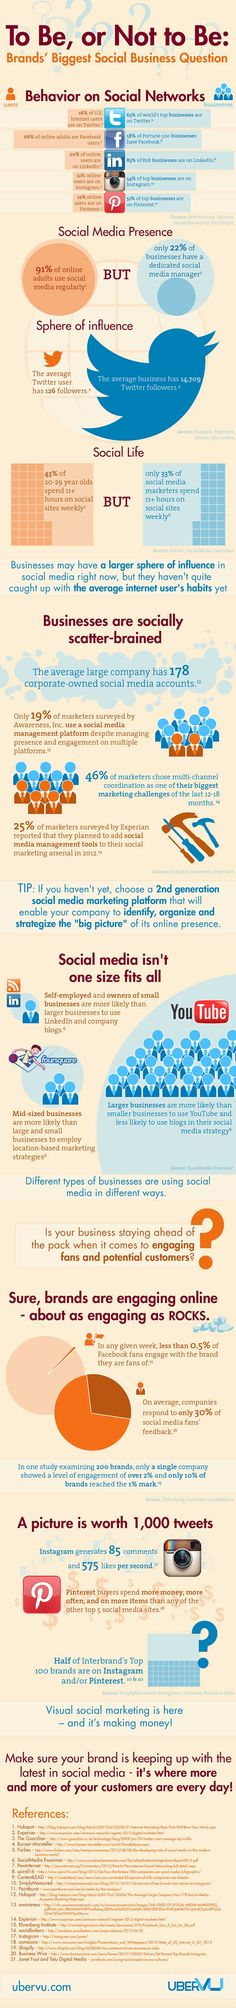 #Social #Media behavior for businesses - #Infographic